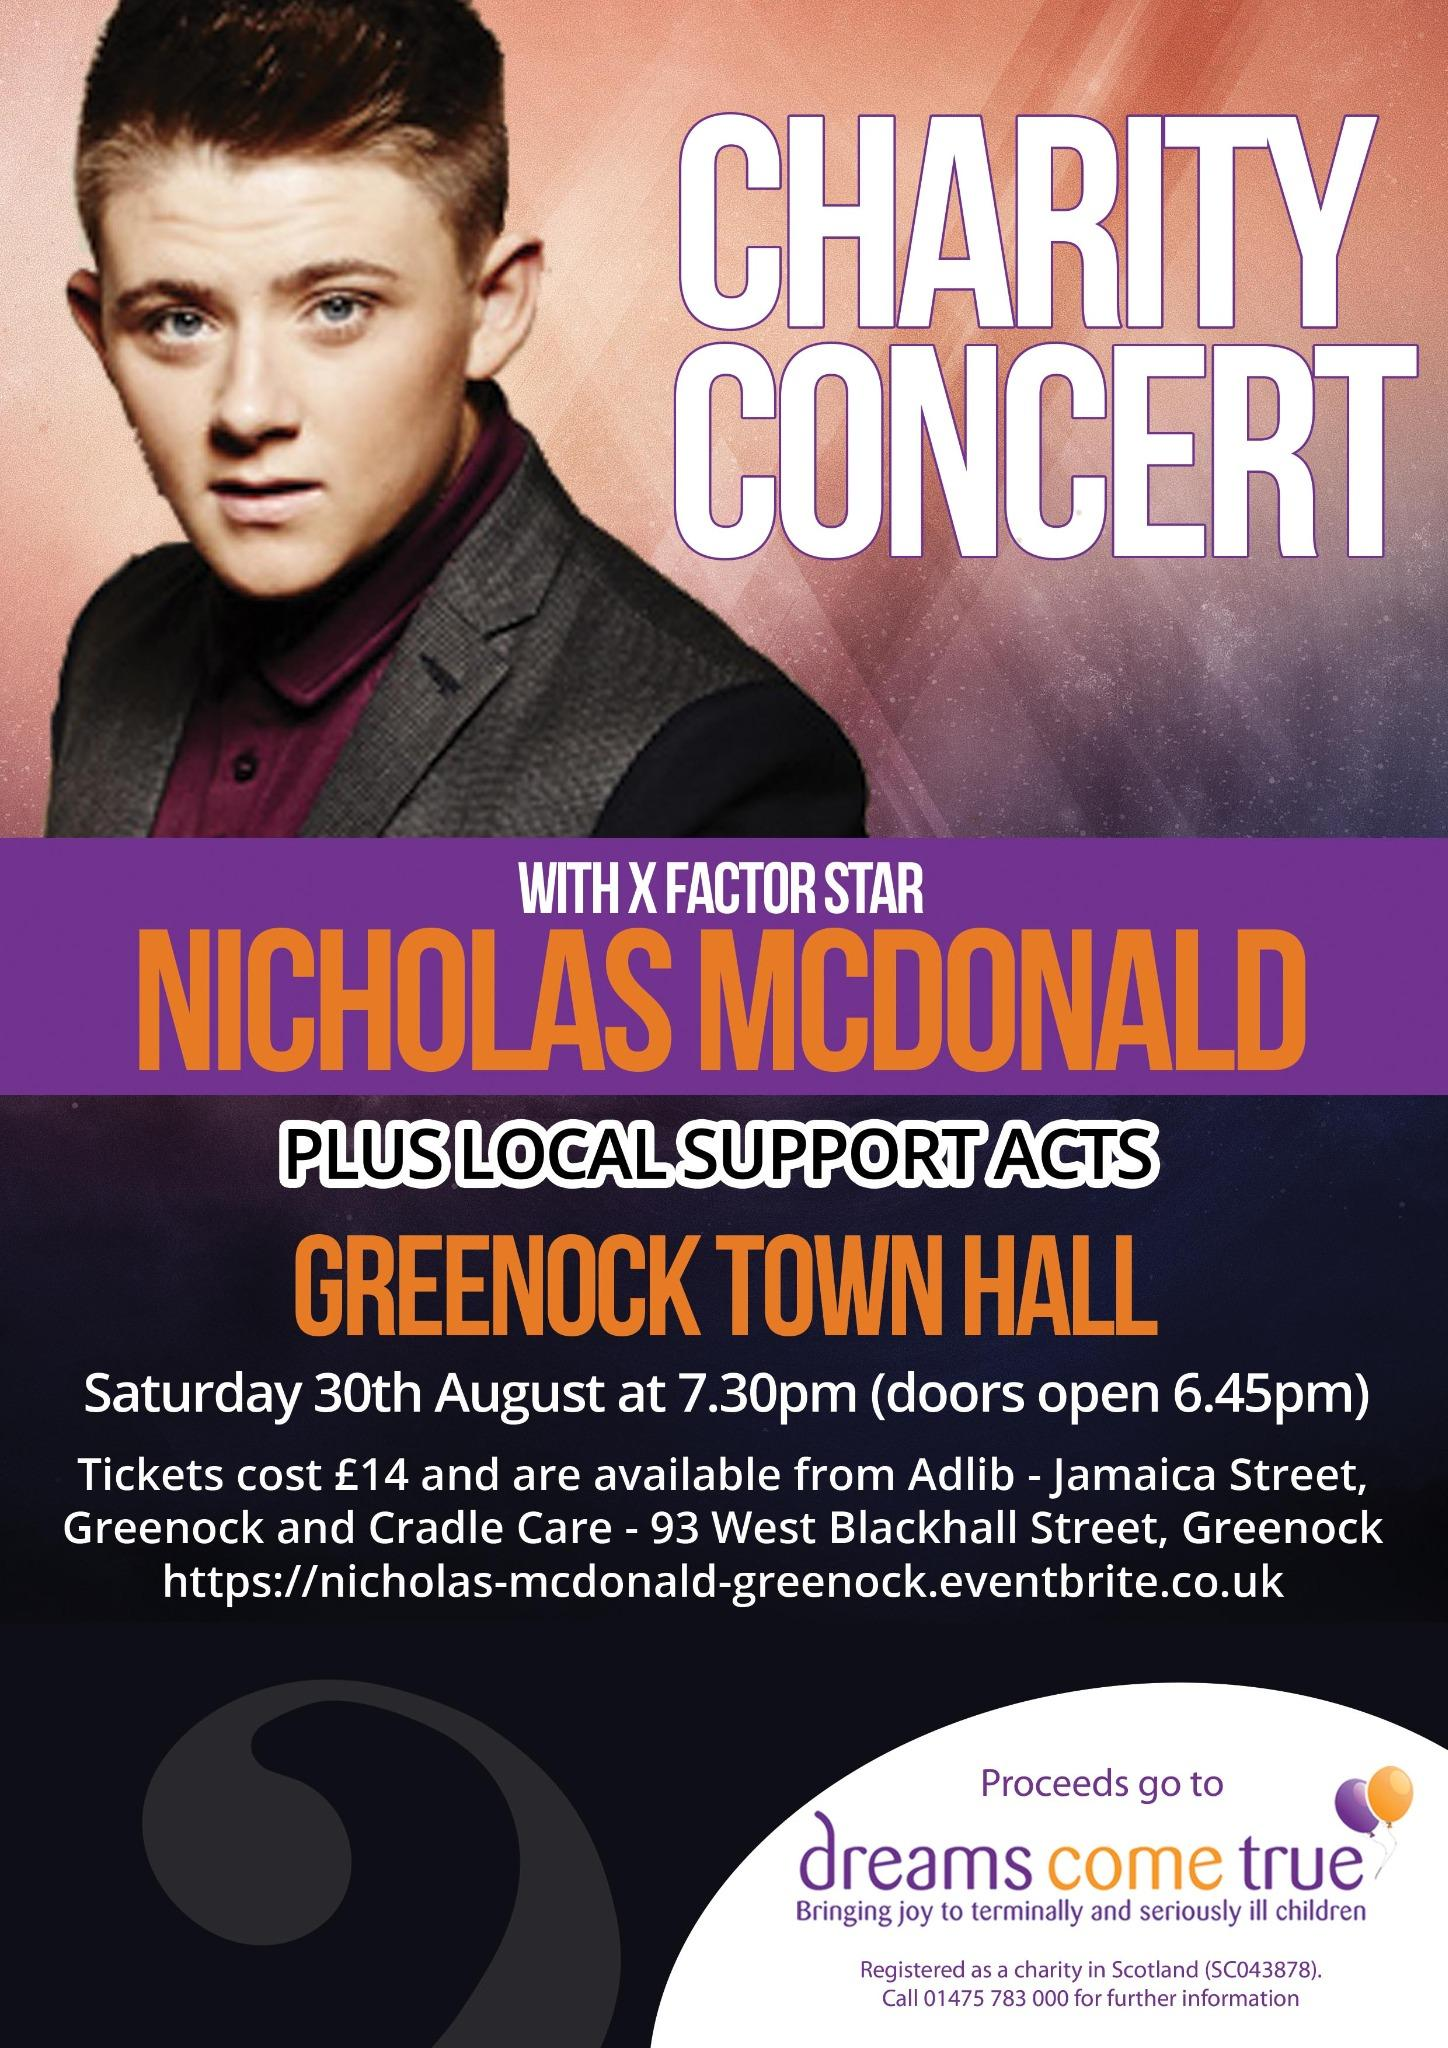 RT @inverclyde: To all the @nickymcdonald1 fans who couldn't make our celebrations, here's your second chance to see him in Greenock! http:…